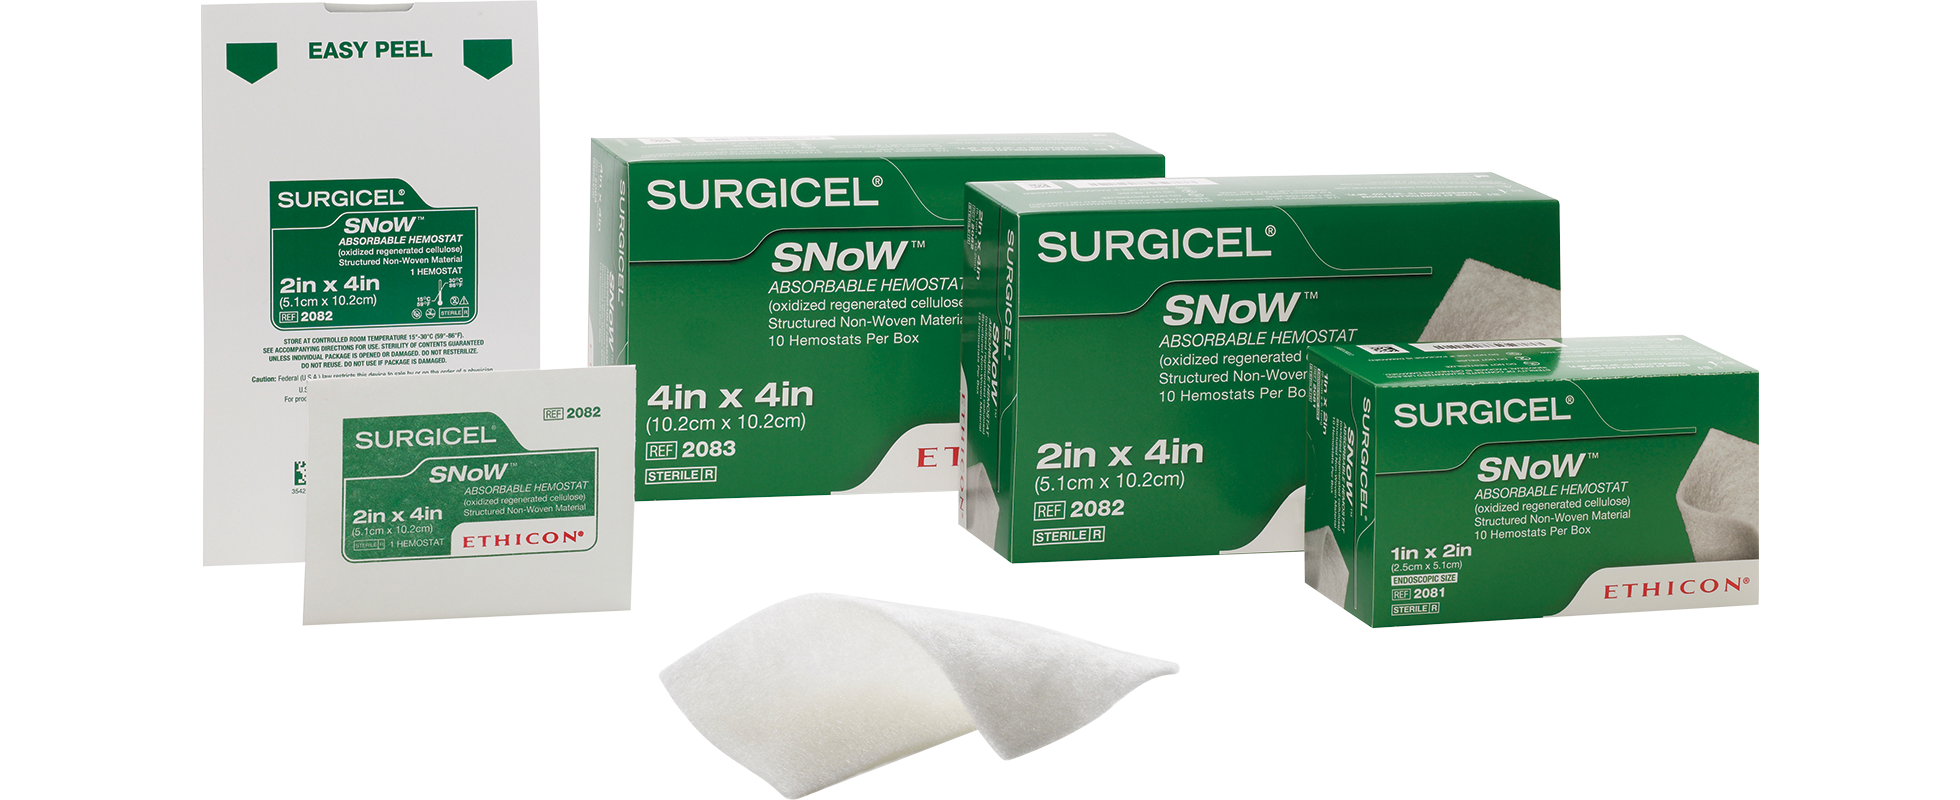 SURGICEL SNoW™ Absorbable Haemostat